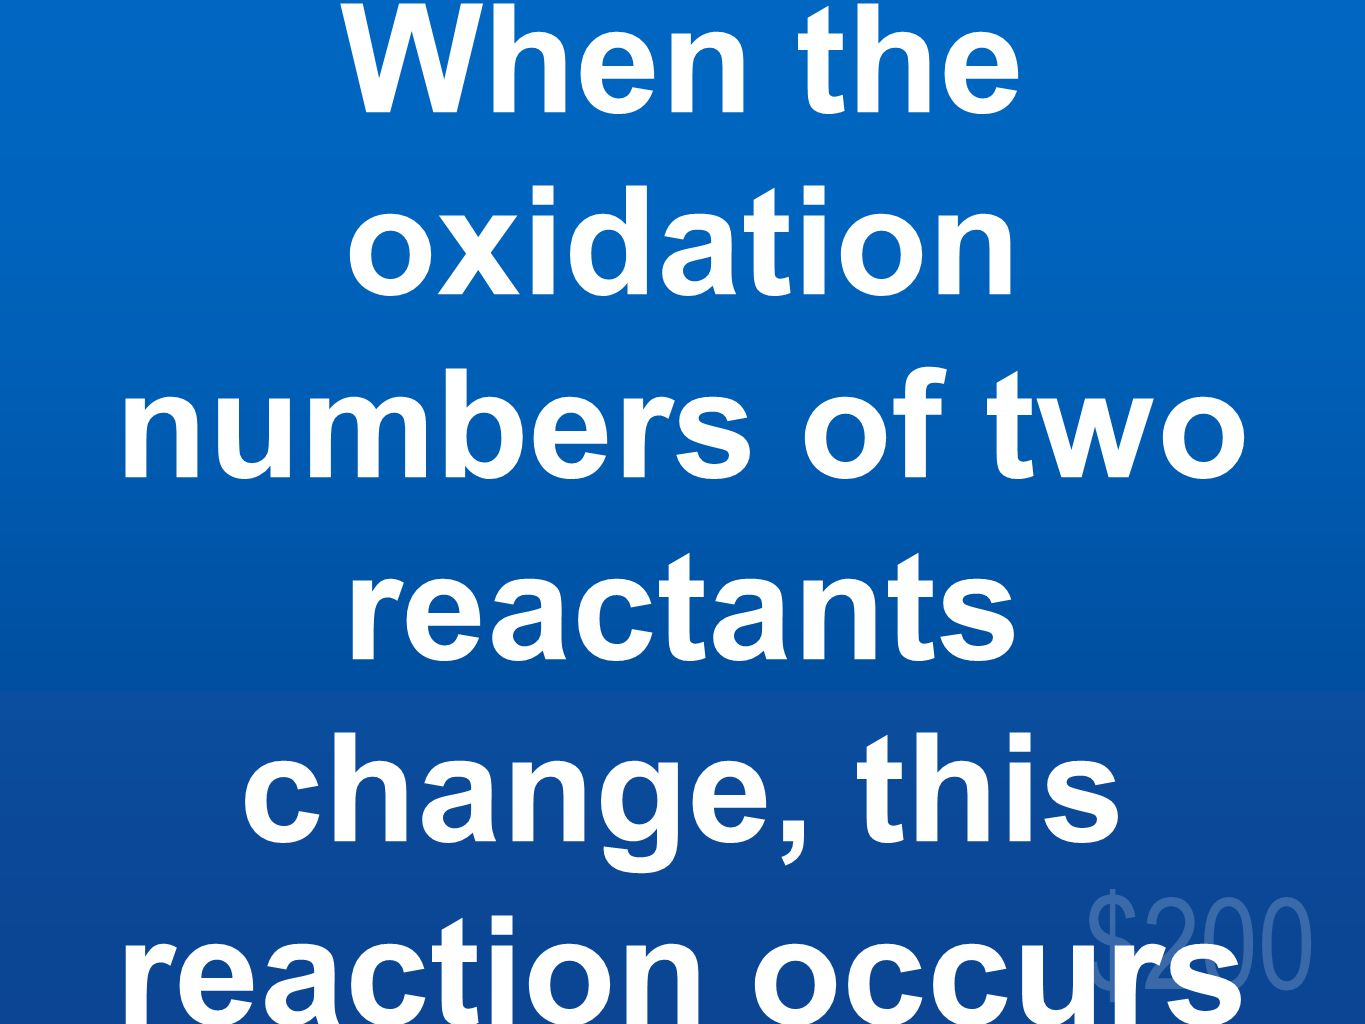 $200 When the oxidation numbers of two reactants change, this reaction occurs